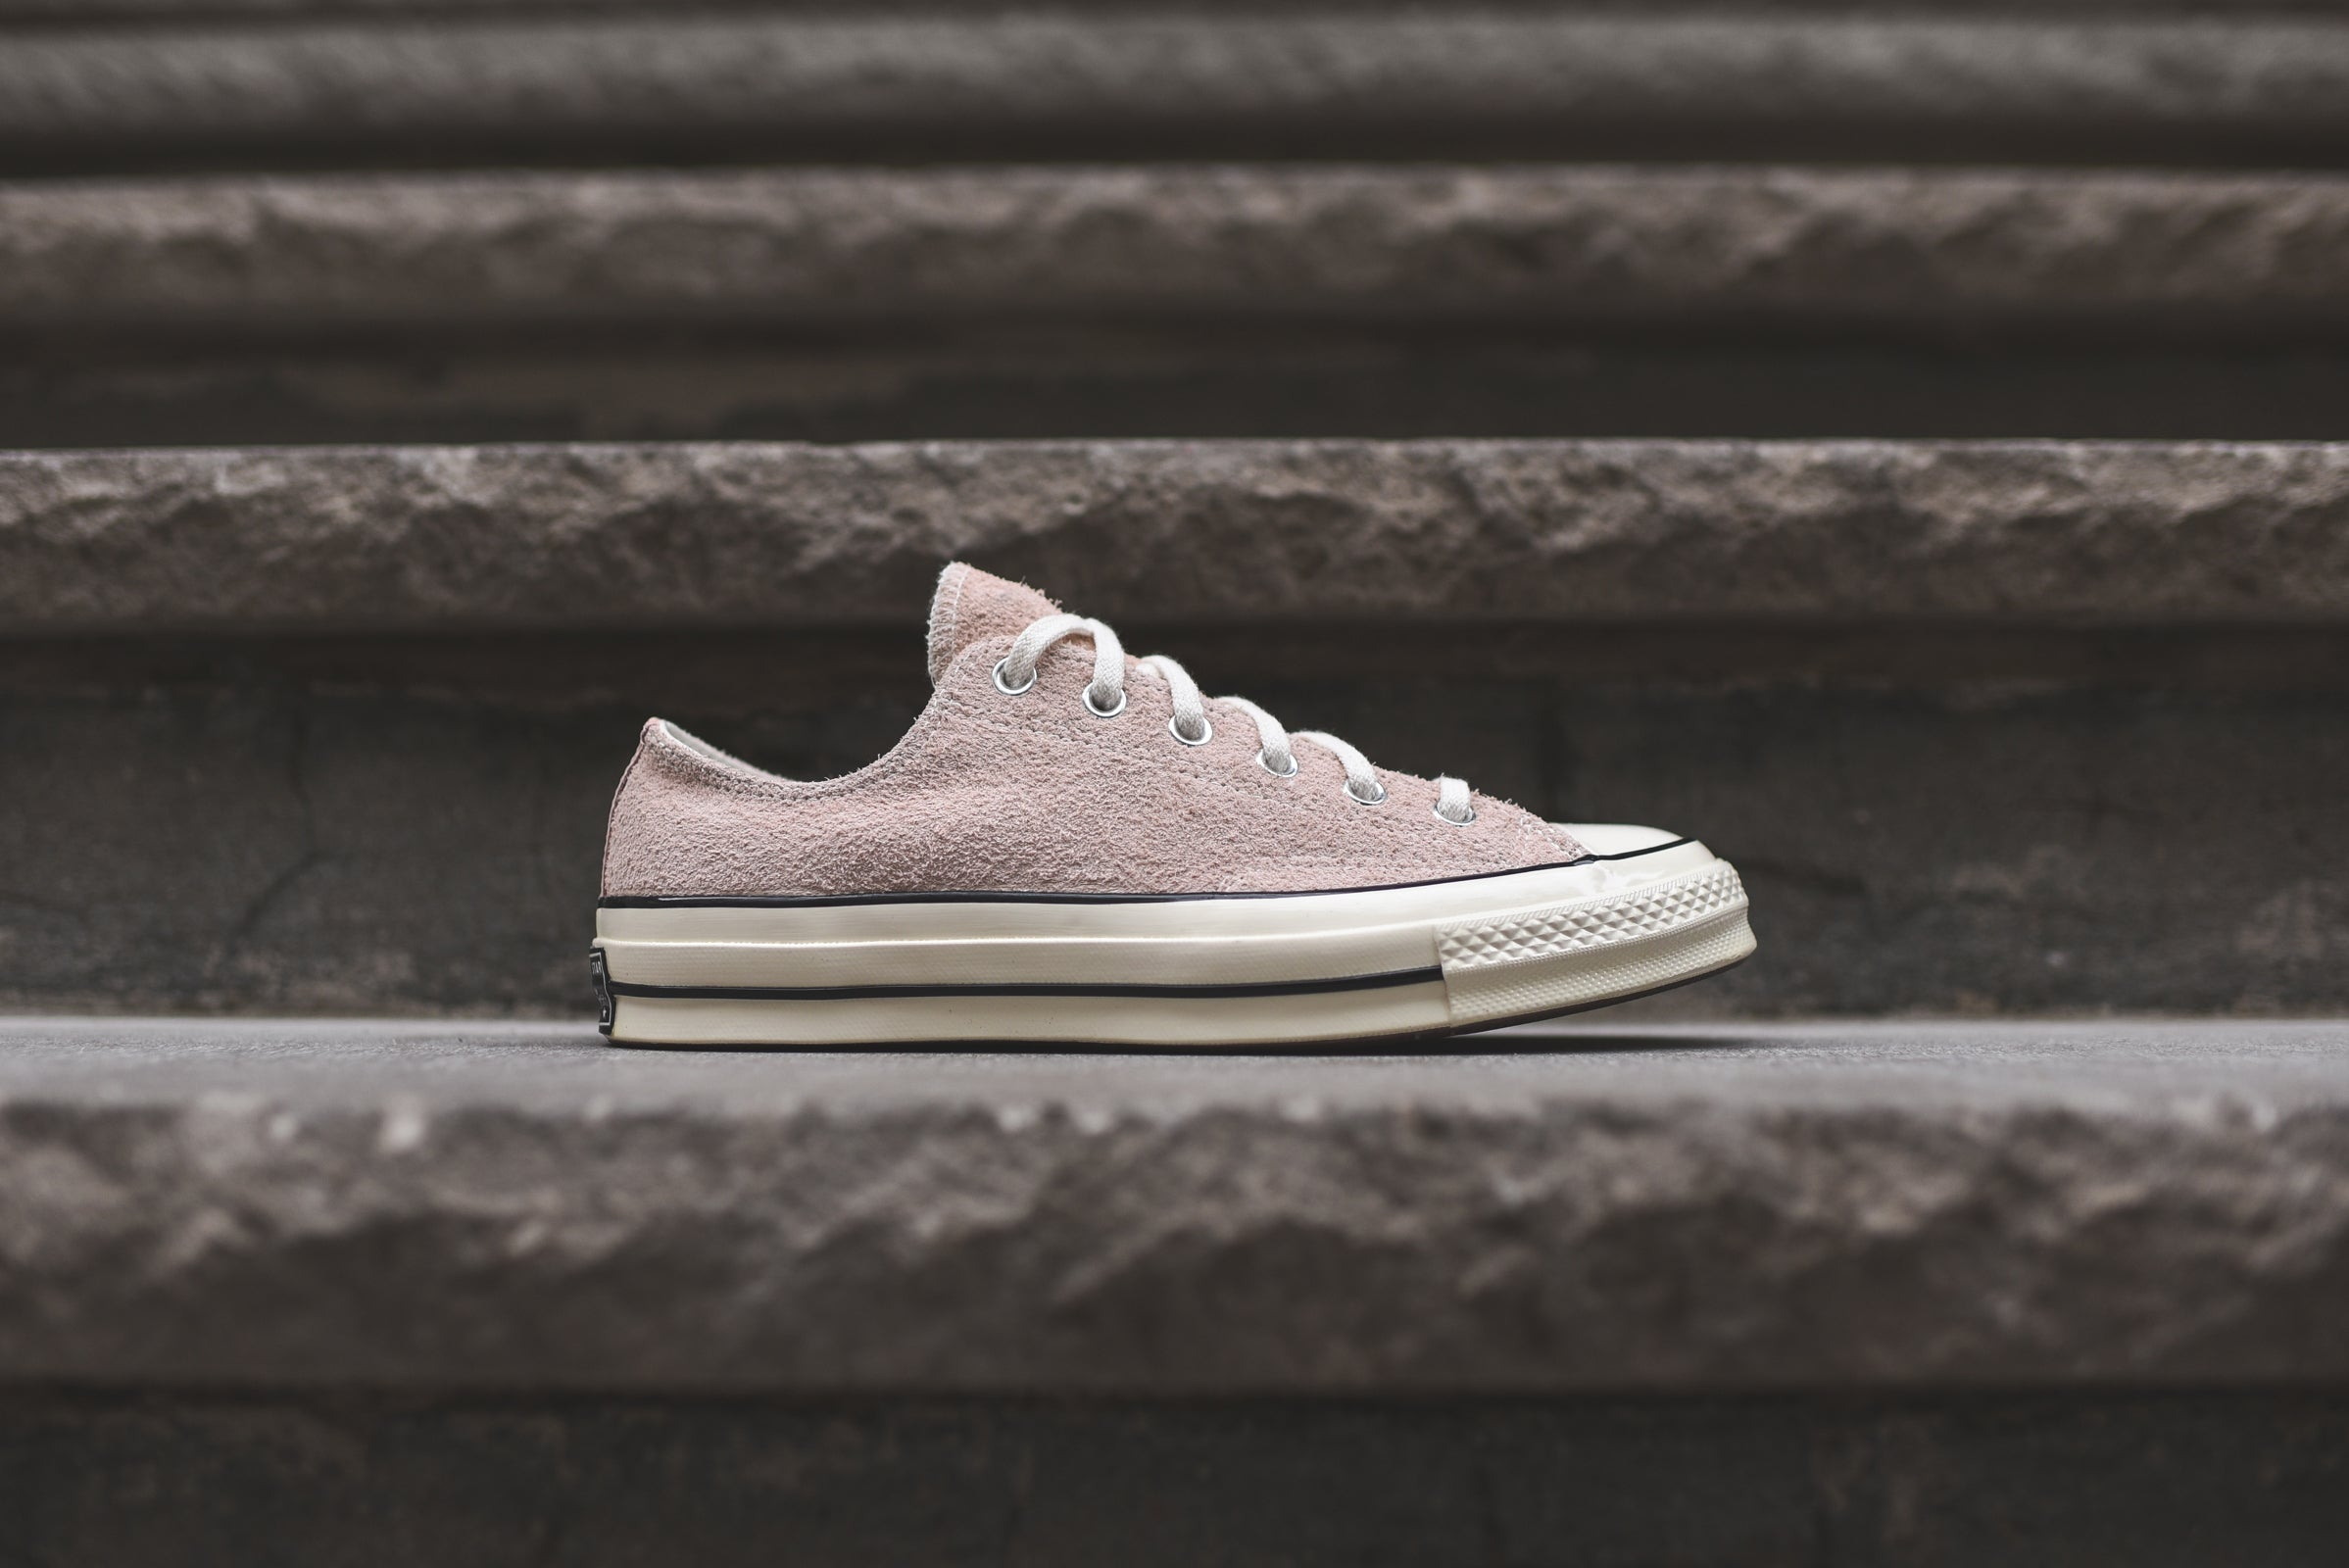 fce95254ad77 Converse Chuck Taylor All Star Low 1970 Vintage Ox - Dusk Pink. August 09